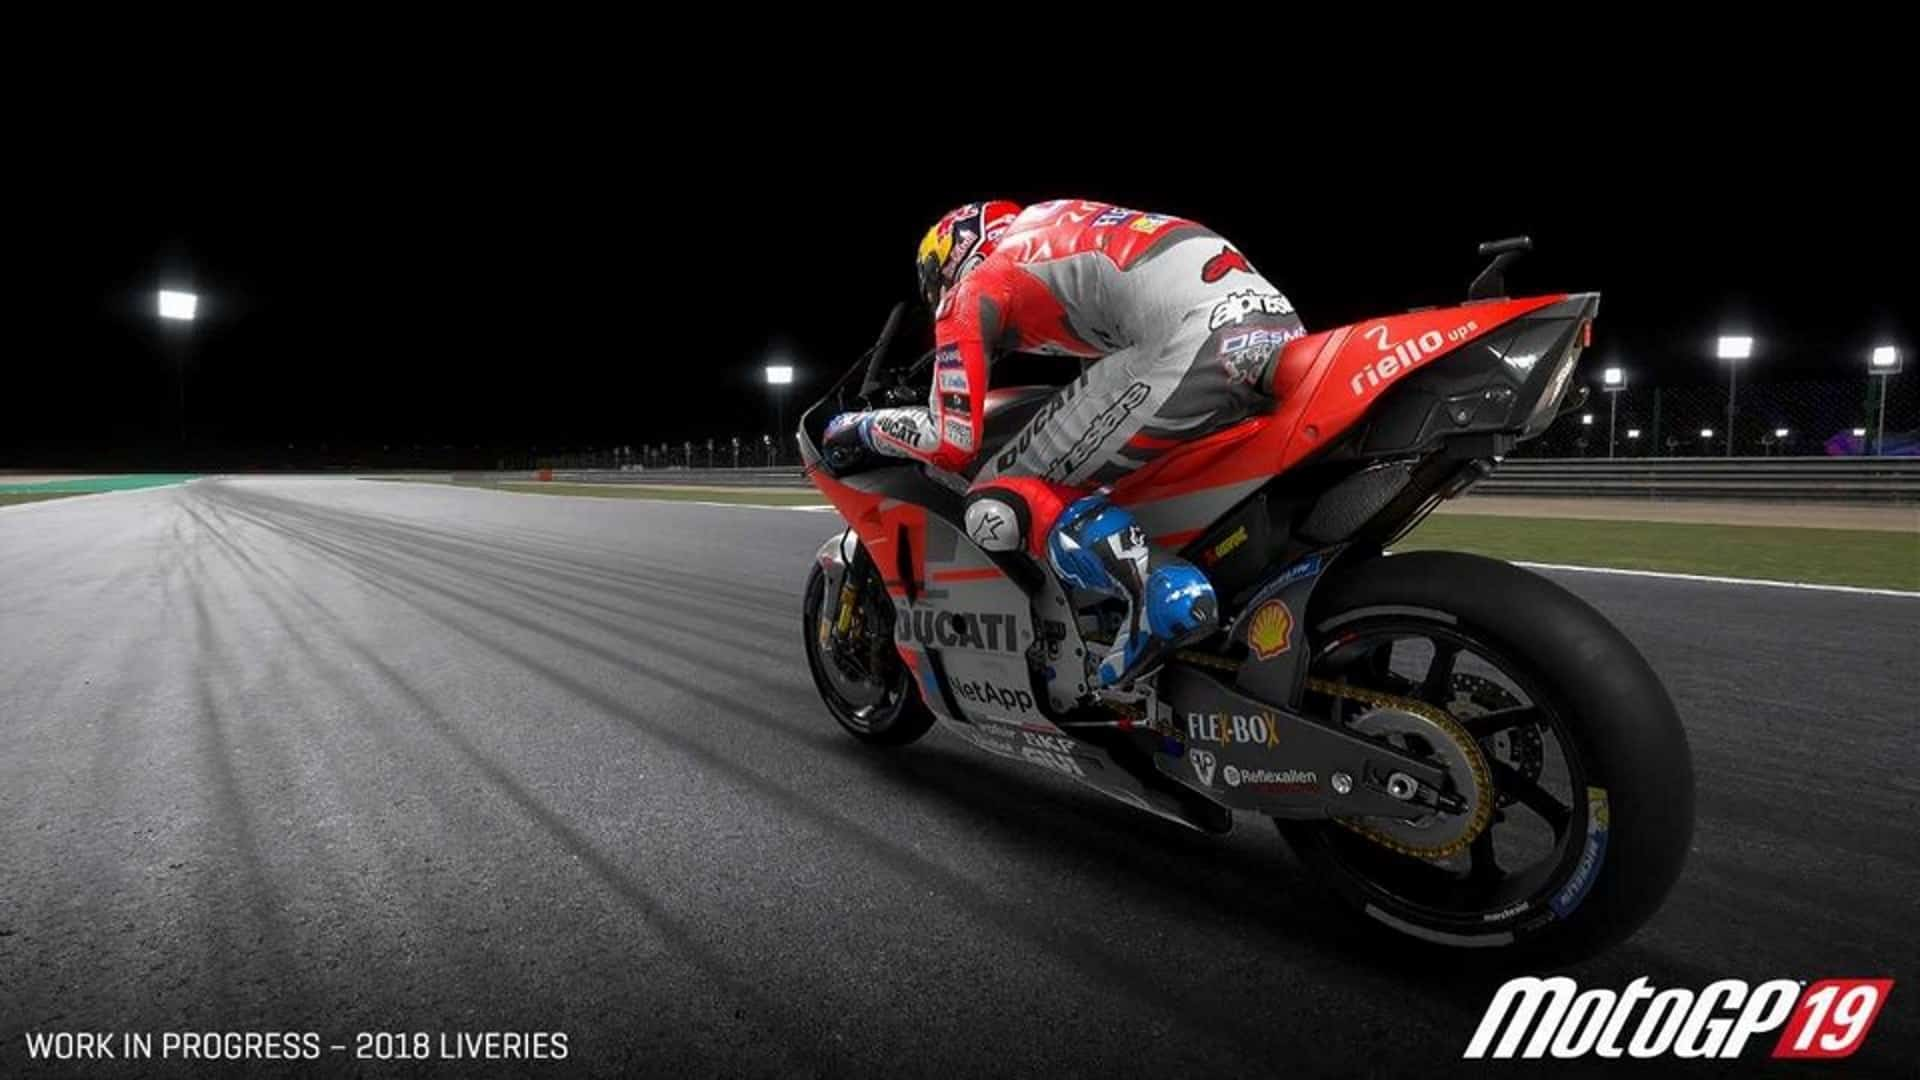 TRAILER: Milestone And Dorna Are Back On The Track With MotoGP19, Available On June 6th